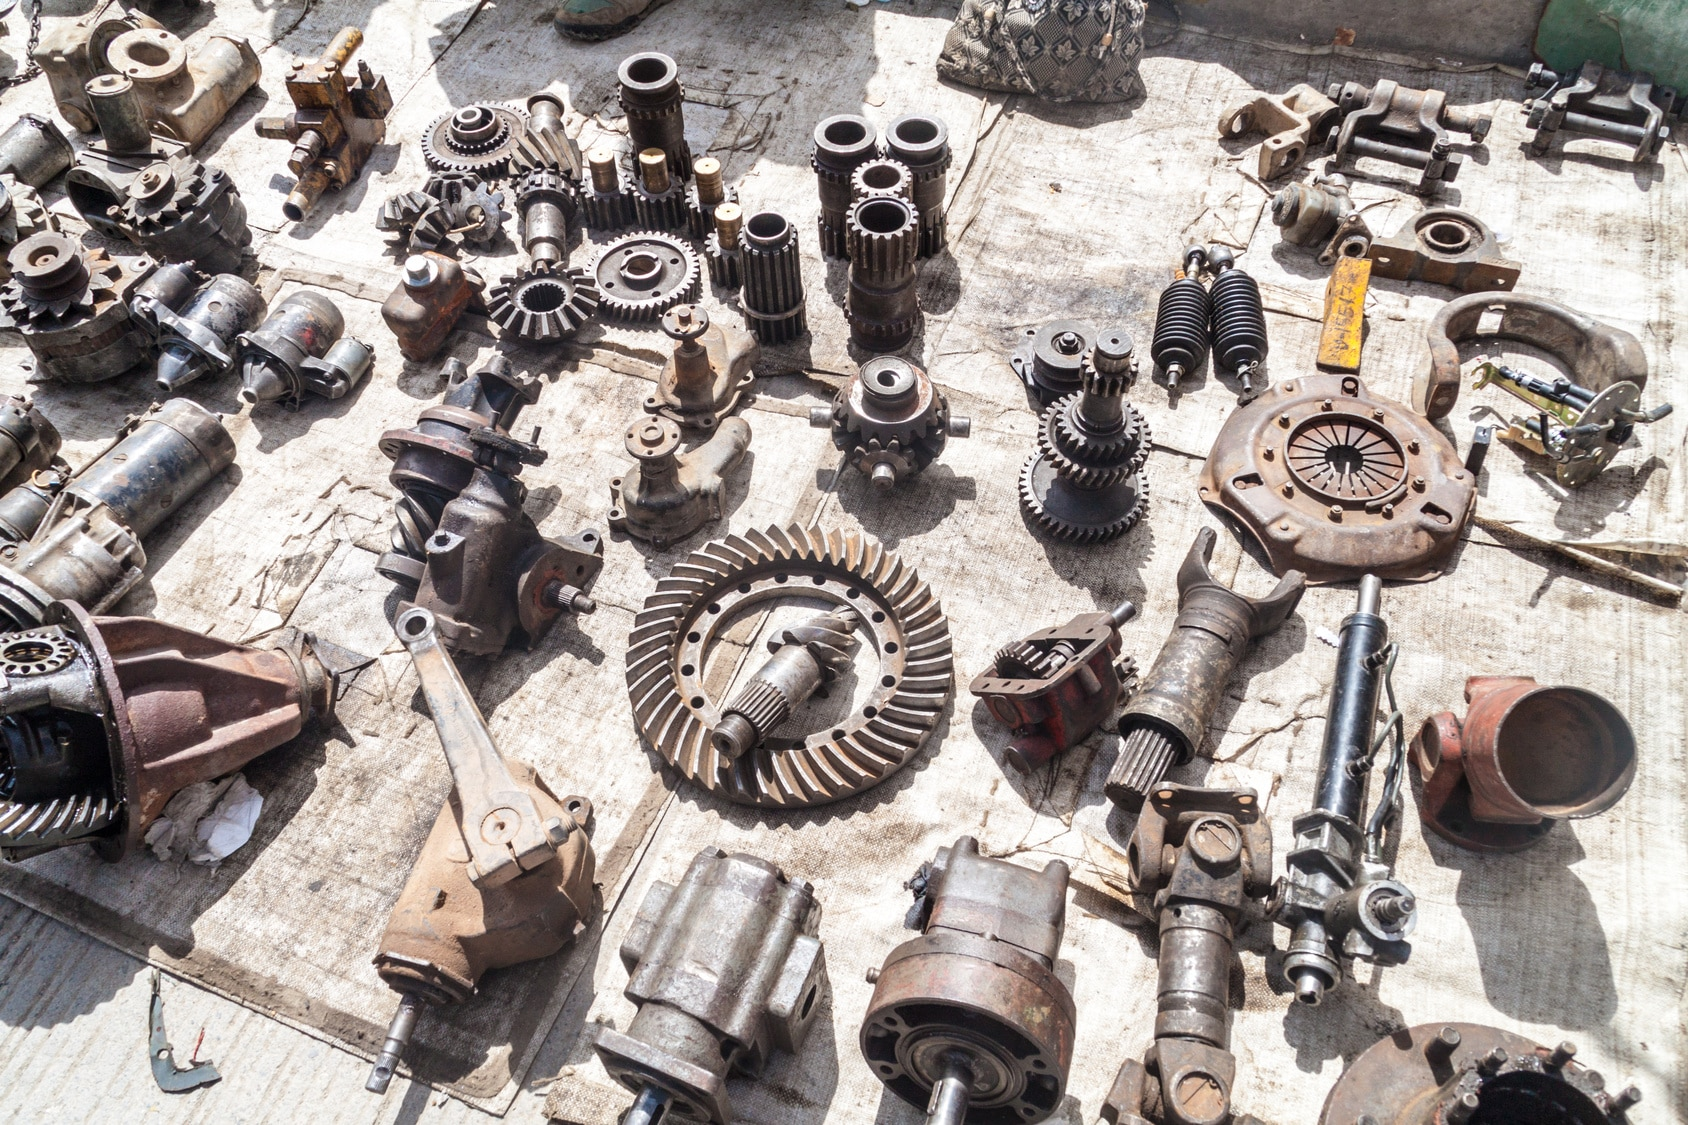 Sell Scrap Metal | Scrap Metal Services | Where to Sell